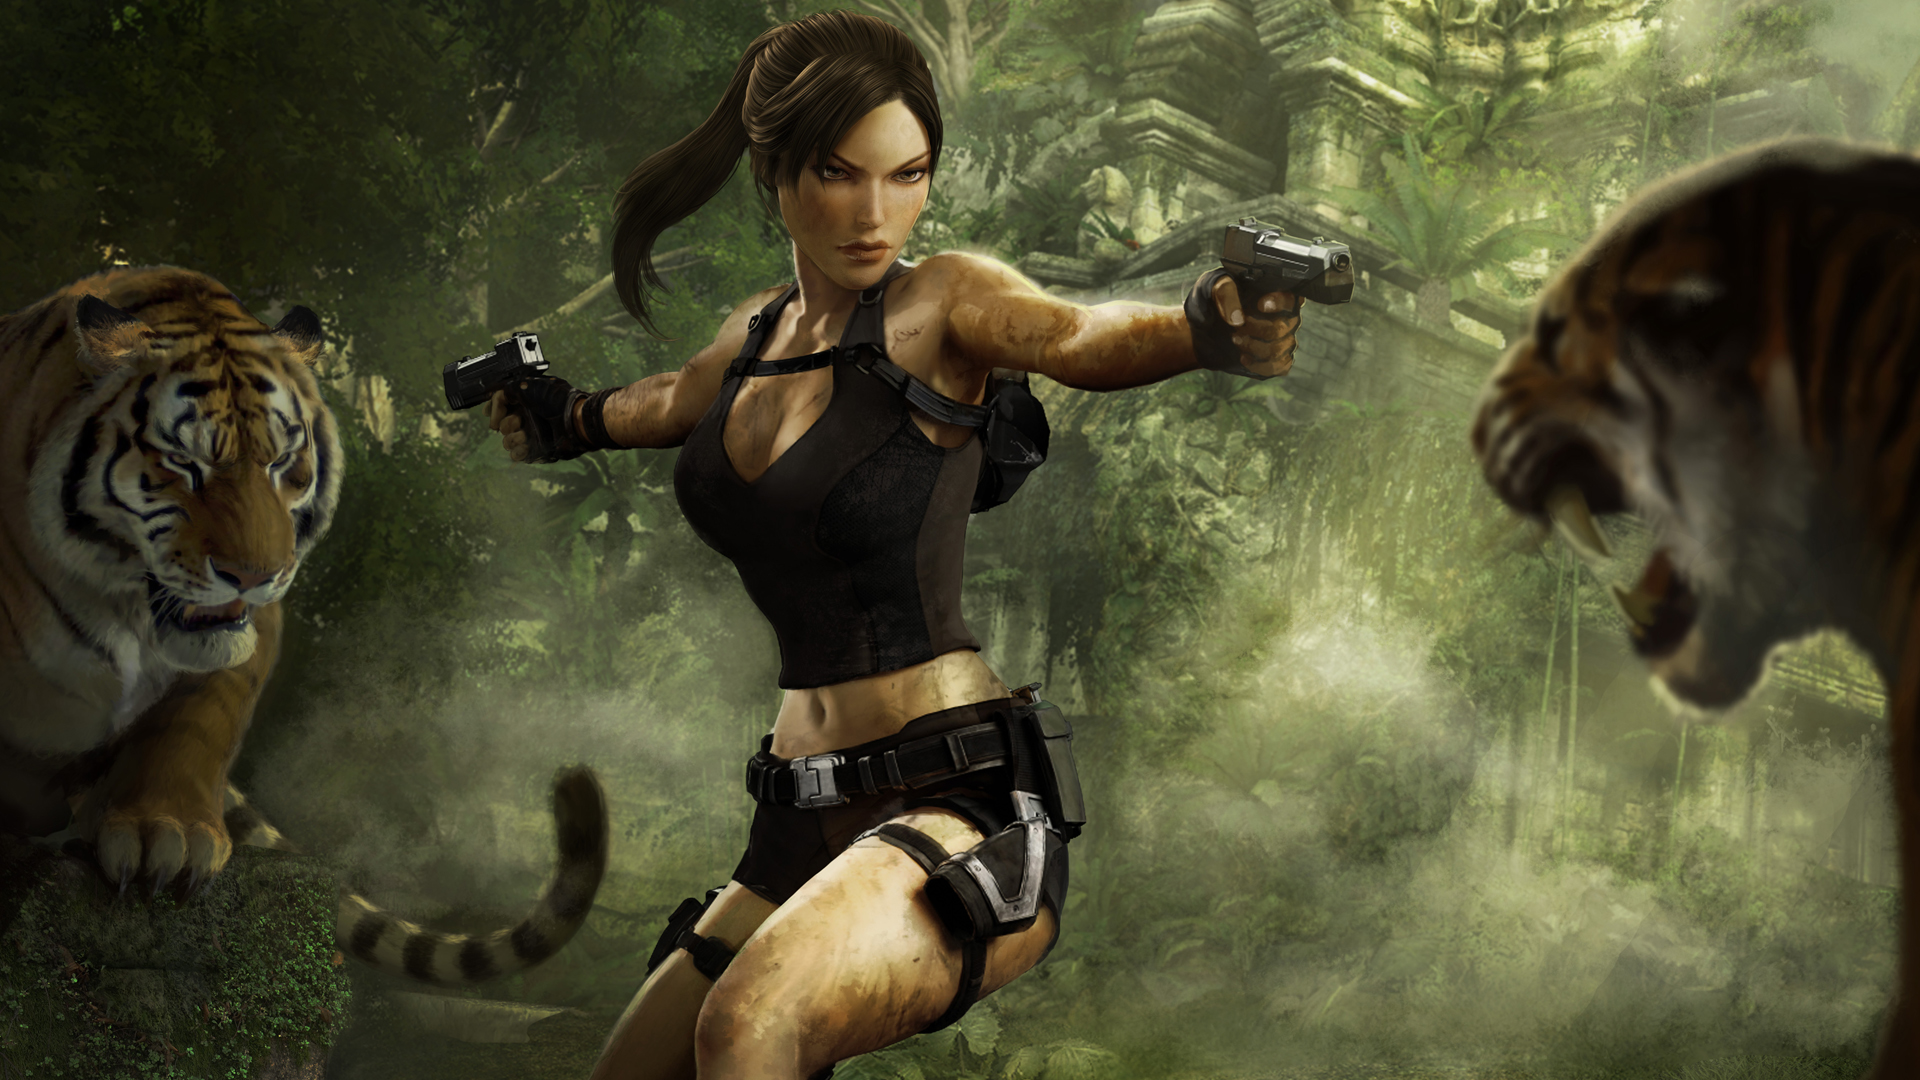 Why I Love The Tomb Raider Franchise Cape Castle